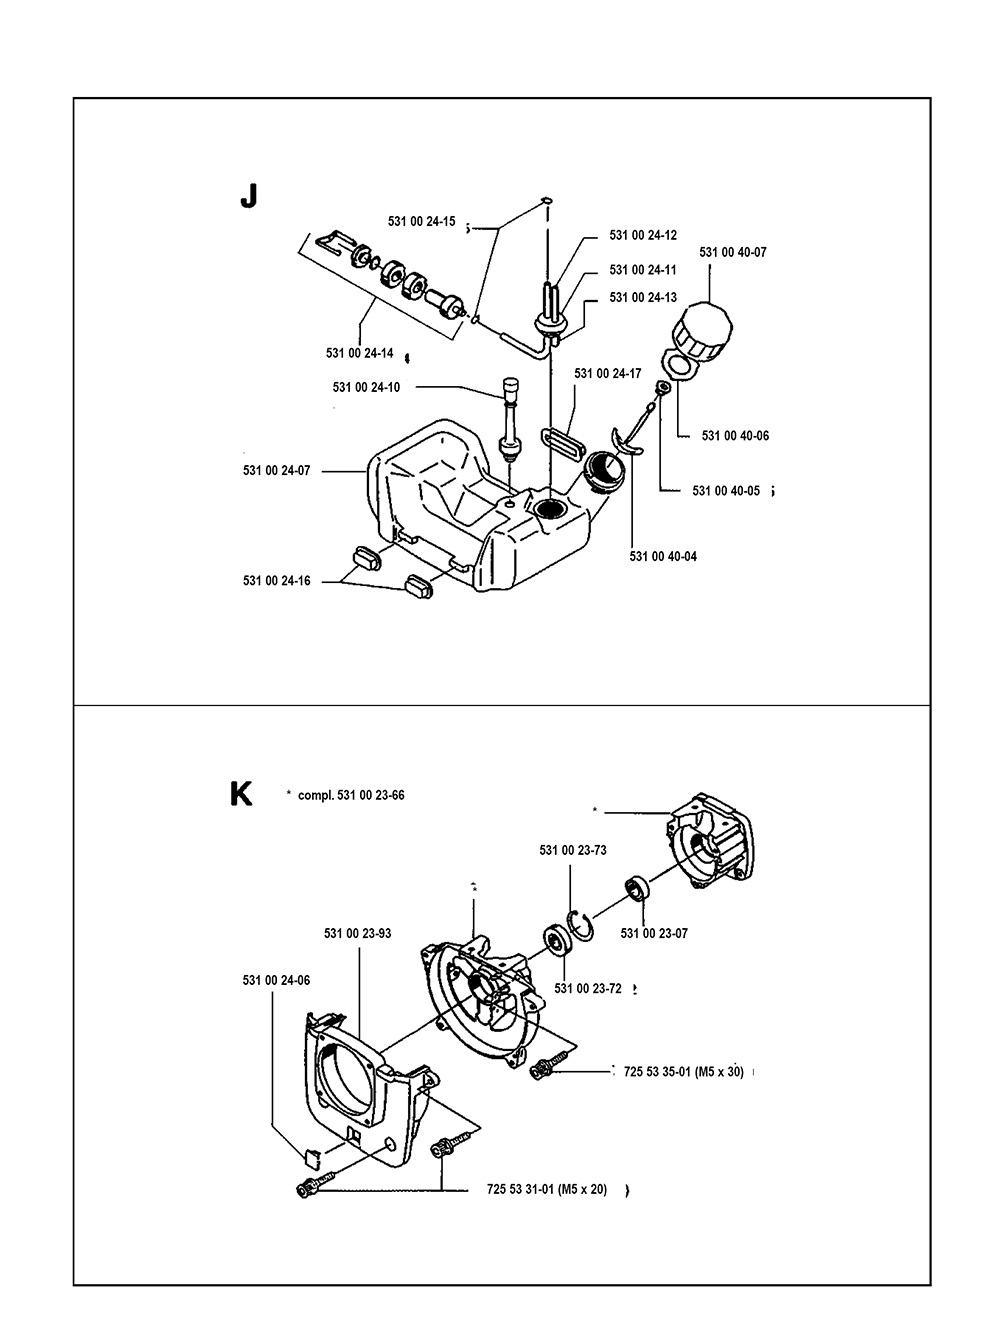 125 E-(I9300004)-Husqvarna-PB-3Break Down